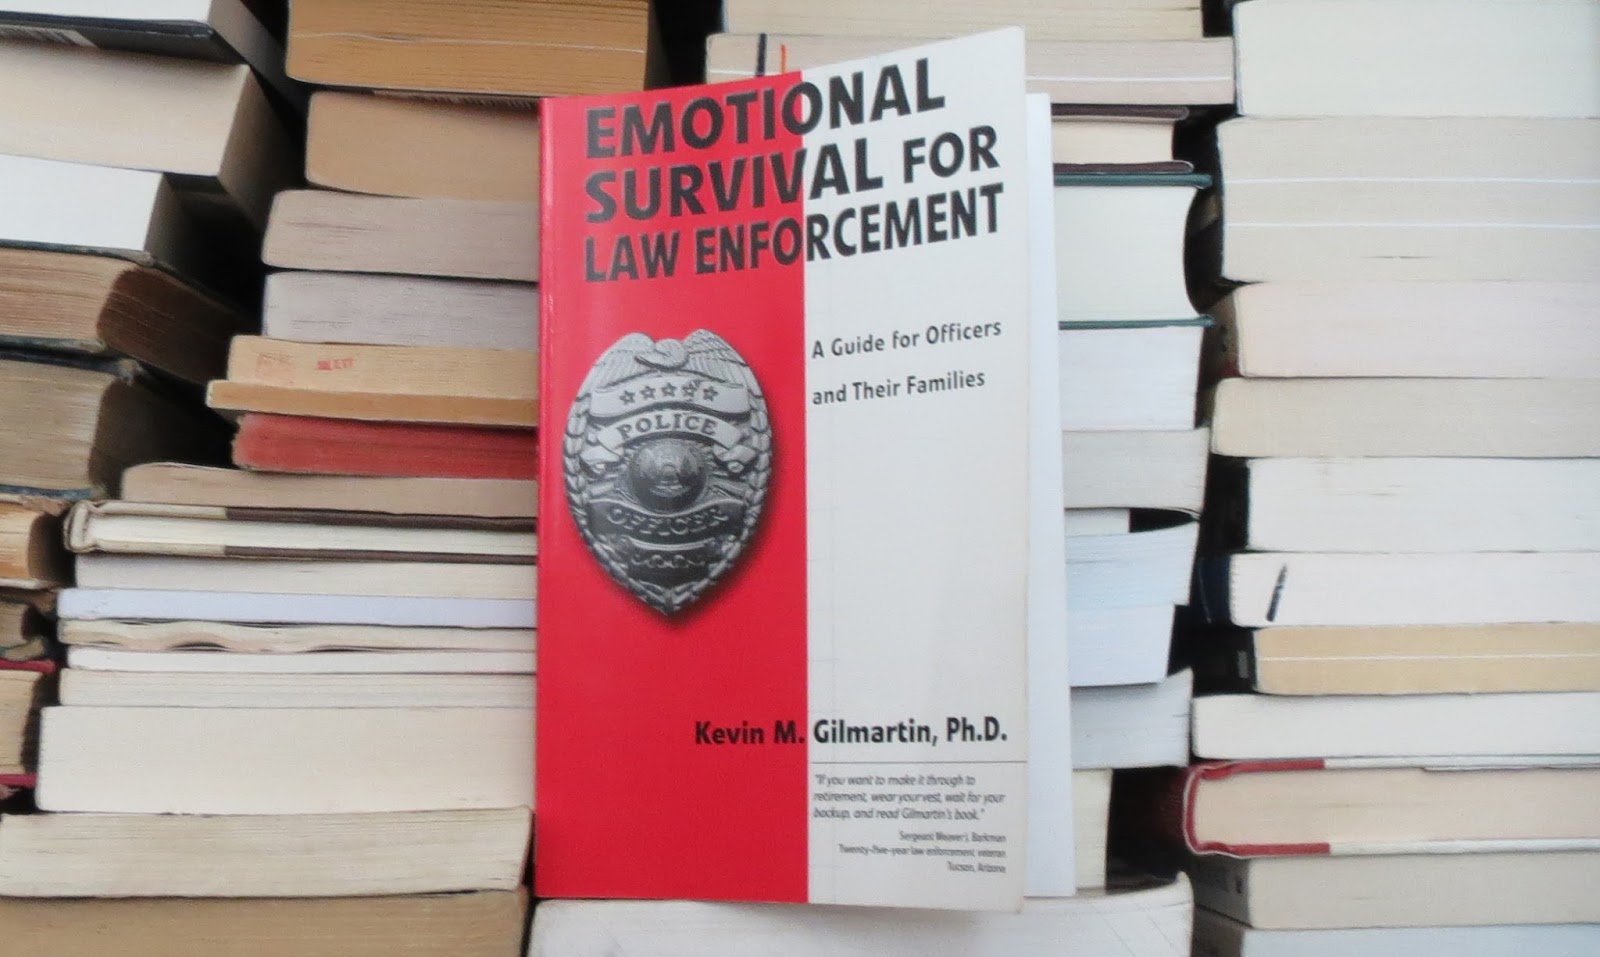 emotional survival for law enforcement 2 Emotional survival for law enforcement: a guide for officers and their families [kevin m gilmartin] on amazoncom free shipping on qualifying offers emotional survival for law enforcement: a guide for officers and their families 1st printing edition.